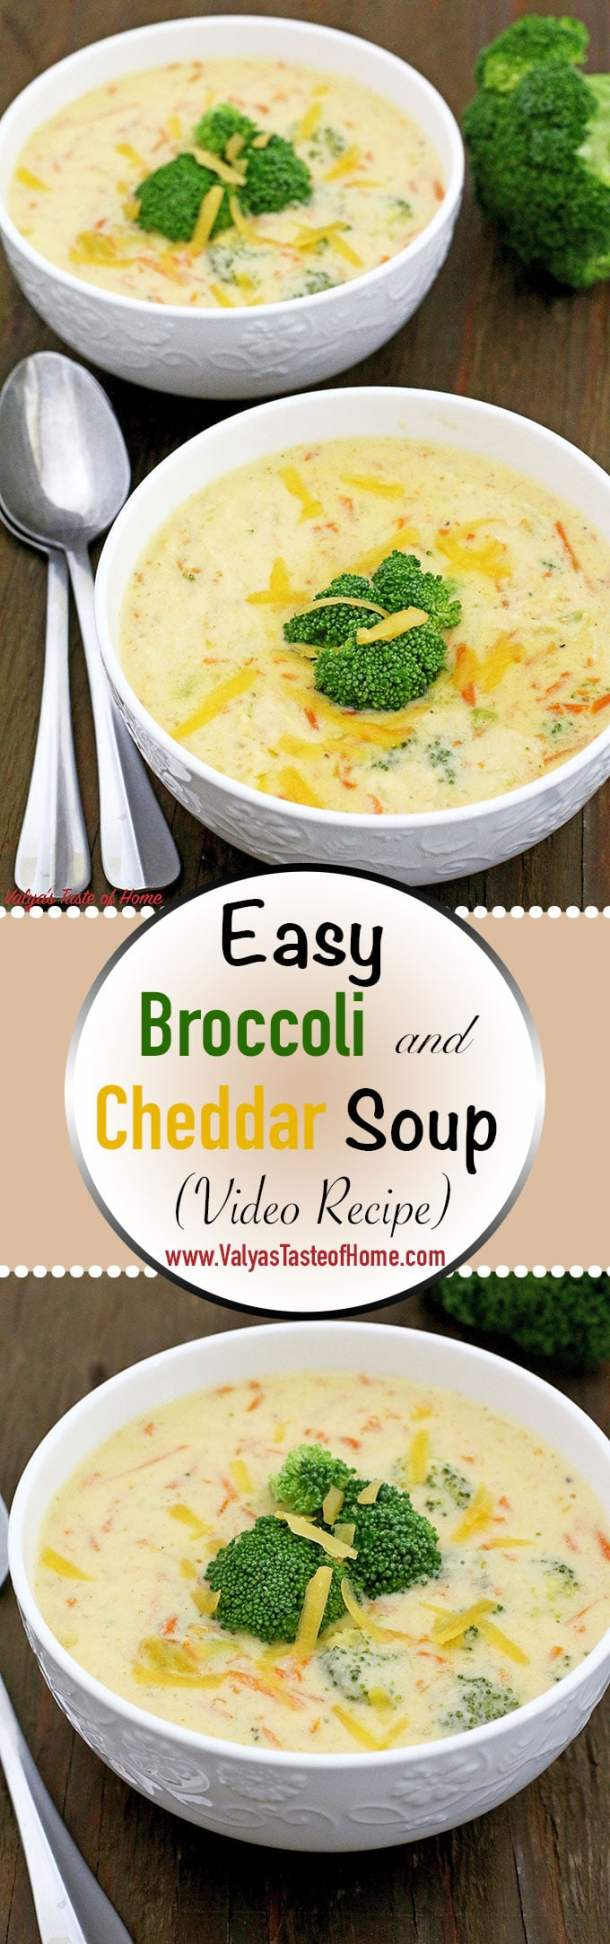 What is there not to like about this creamy, full of flavor, loaded with vegetables, and easy to make a delicious bowl of Easy Broccoli and Cheddar Soup (Video Recipe). Literally, this soup can be made under 30 minutes!